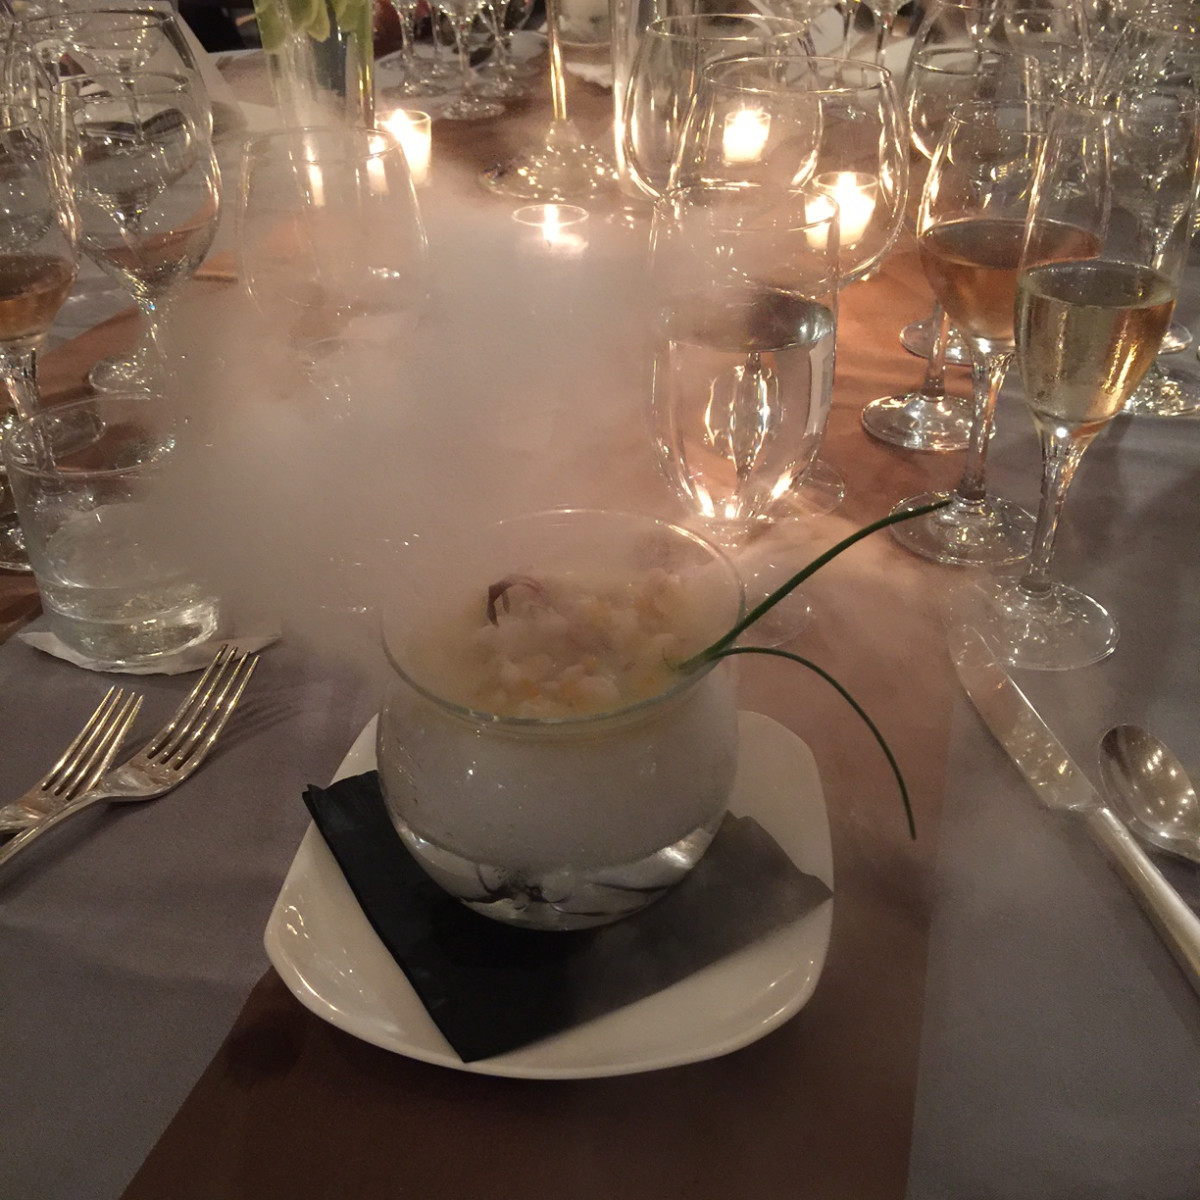 Bon Vivant Chef Dinner, Jan. 2016, Olivier Ciesielski's tropical ceviche